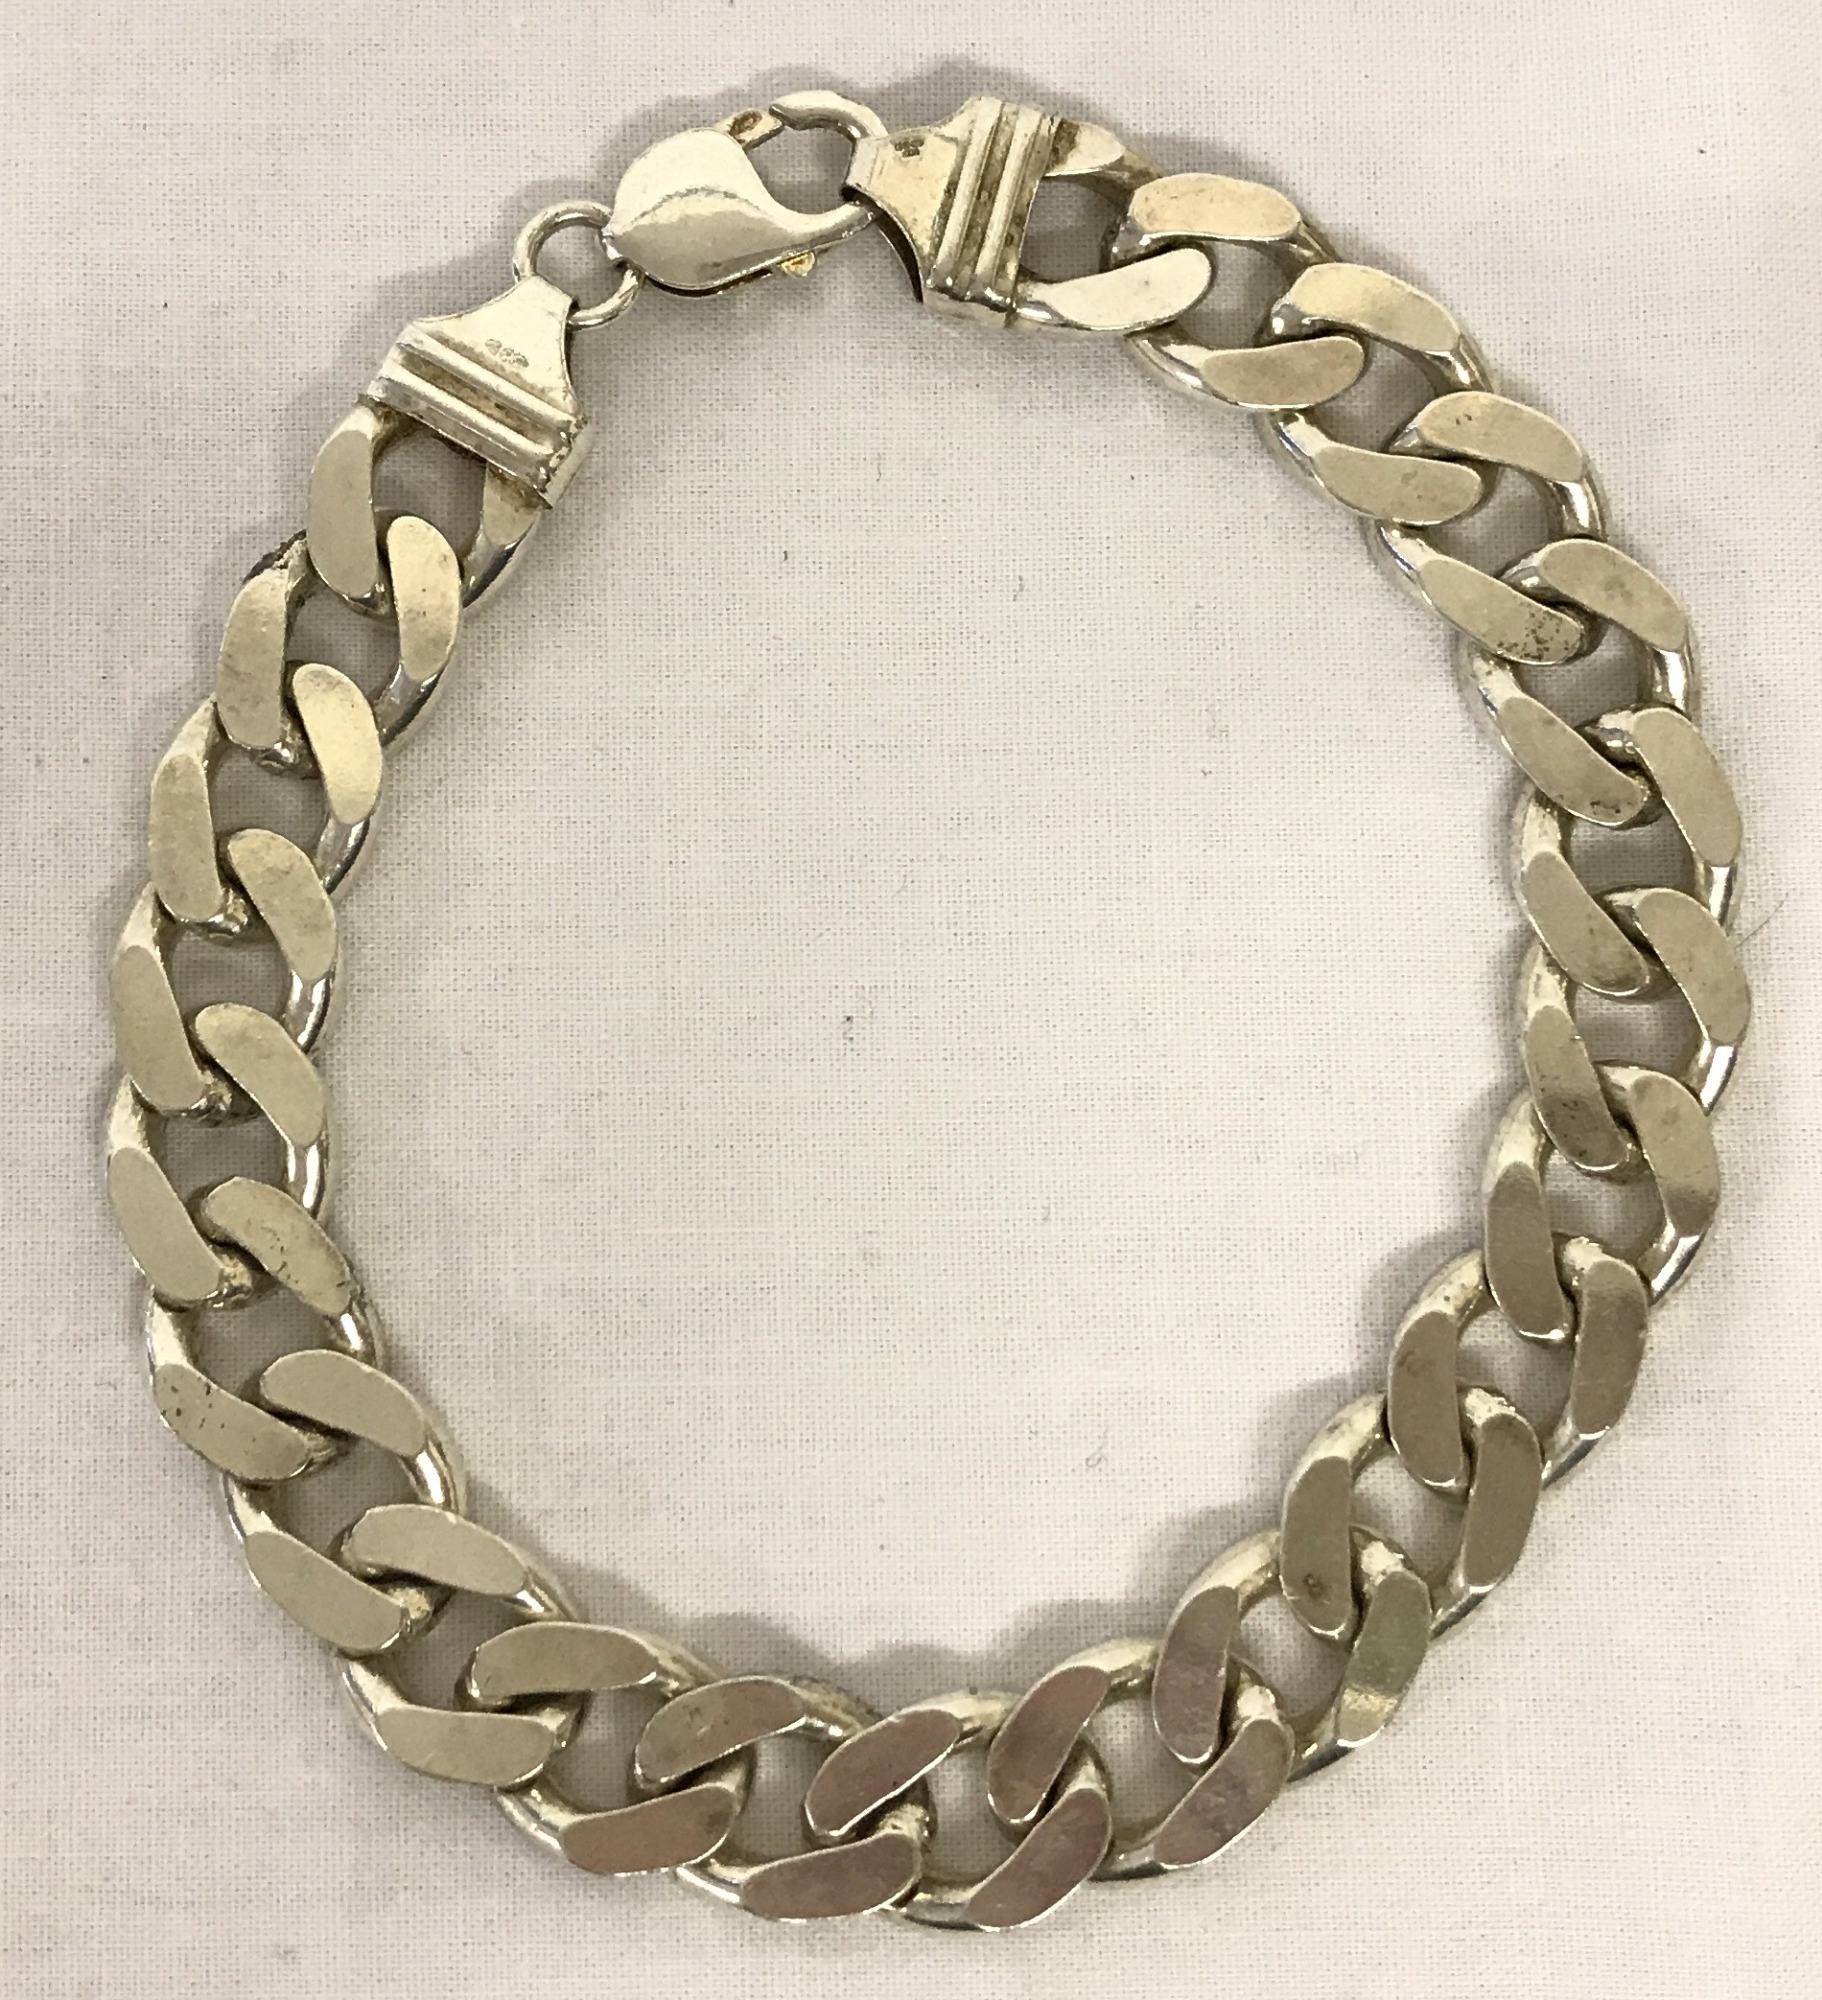 Lot 39 - A modern white metal heavy curb chain bracelet with lobster clasp.